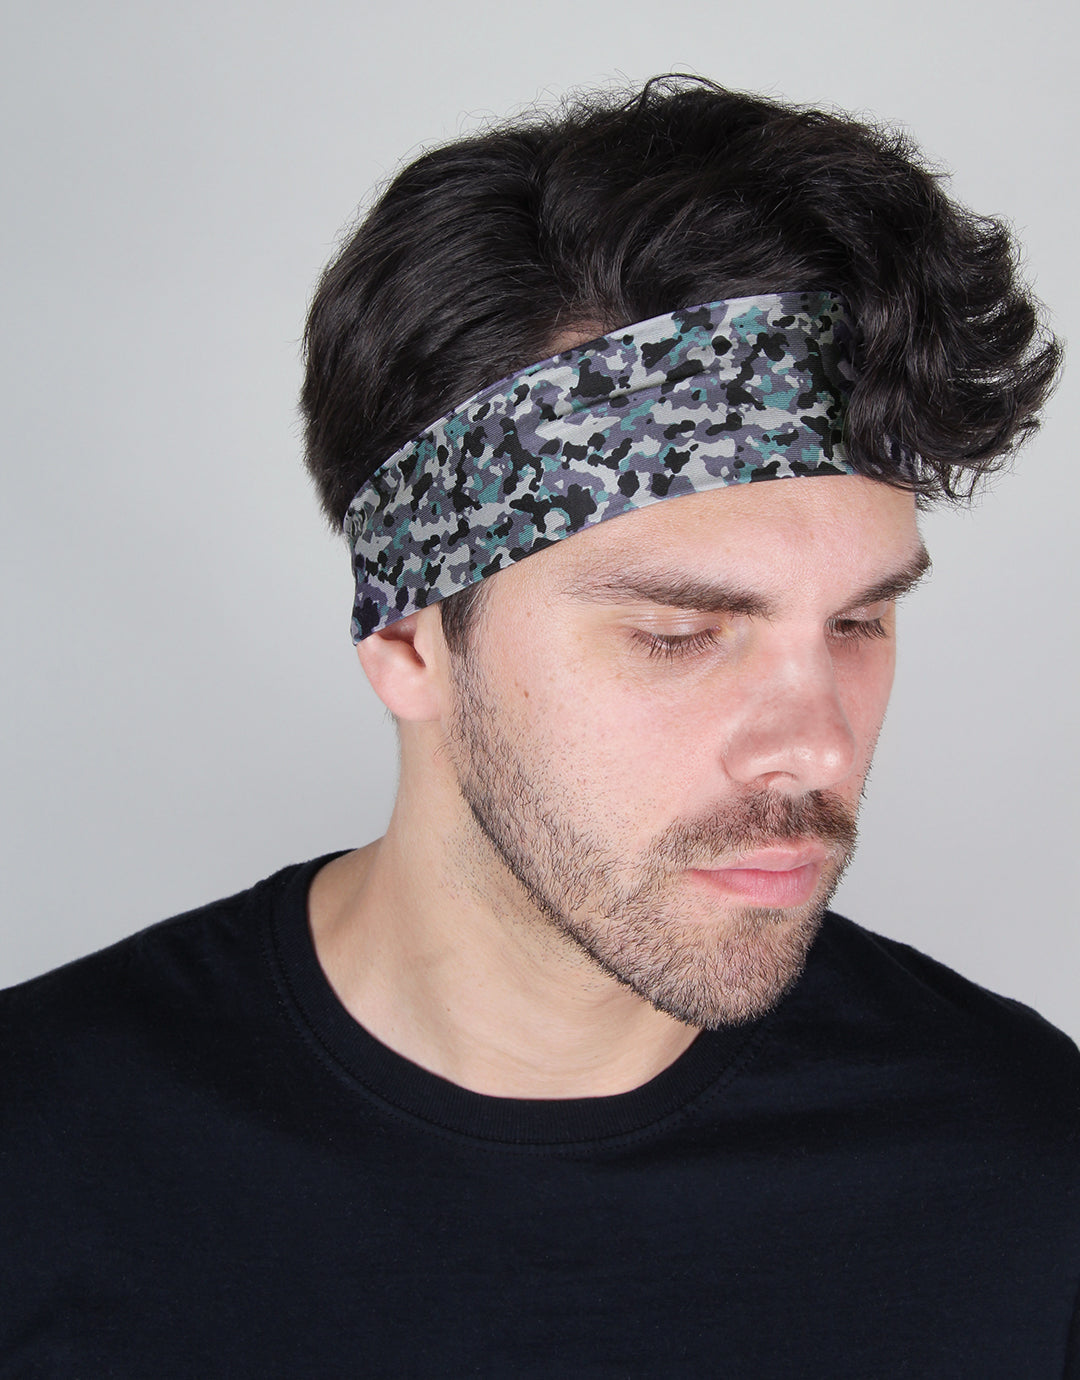 Camo - Amplify Athletic Headband